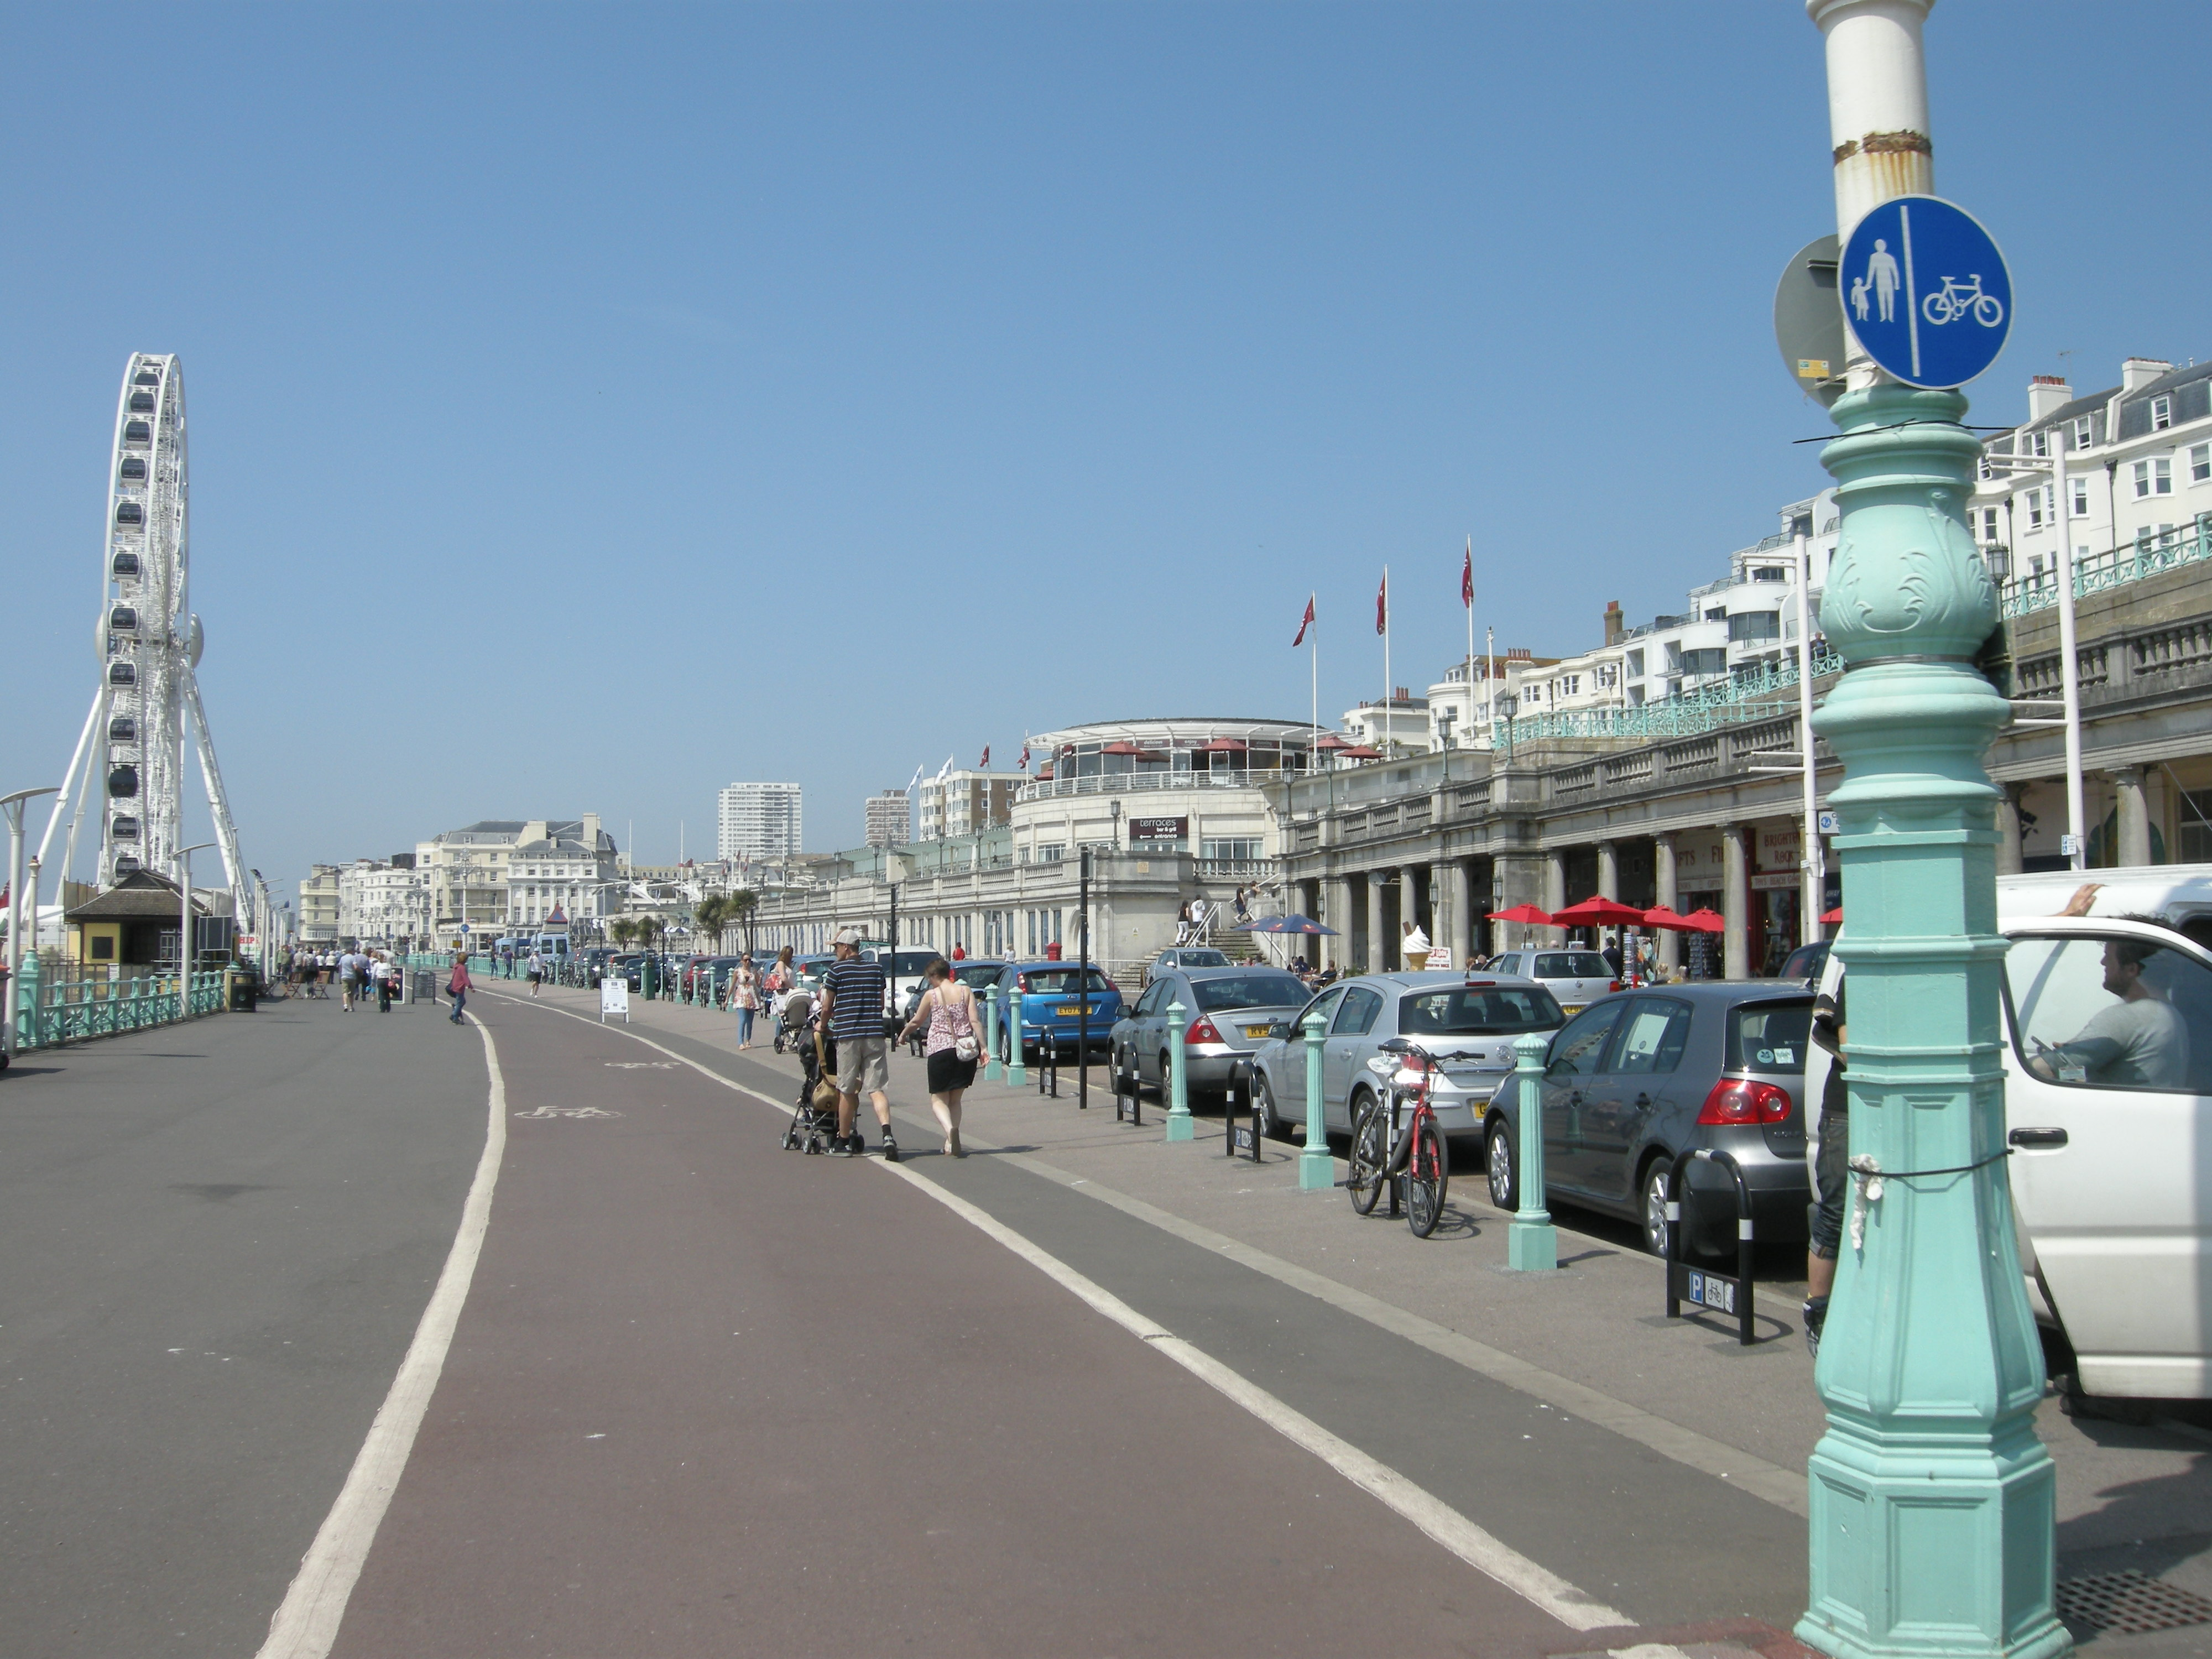 Brighton weather and parking charges as easy as riding for The brighton